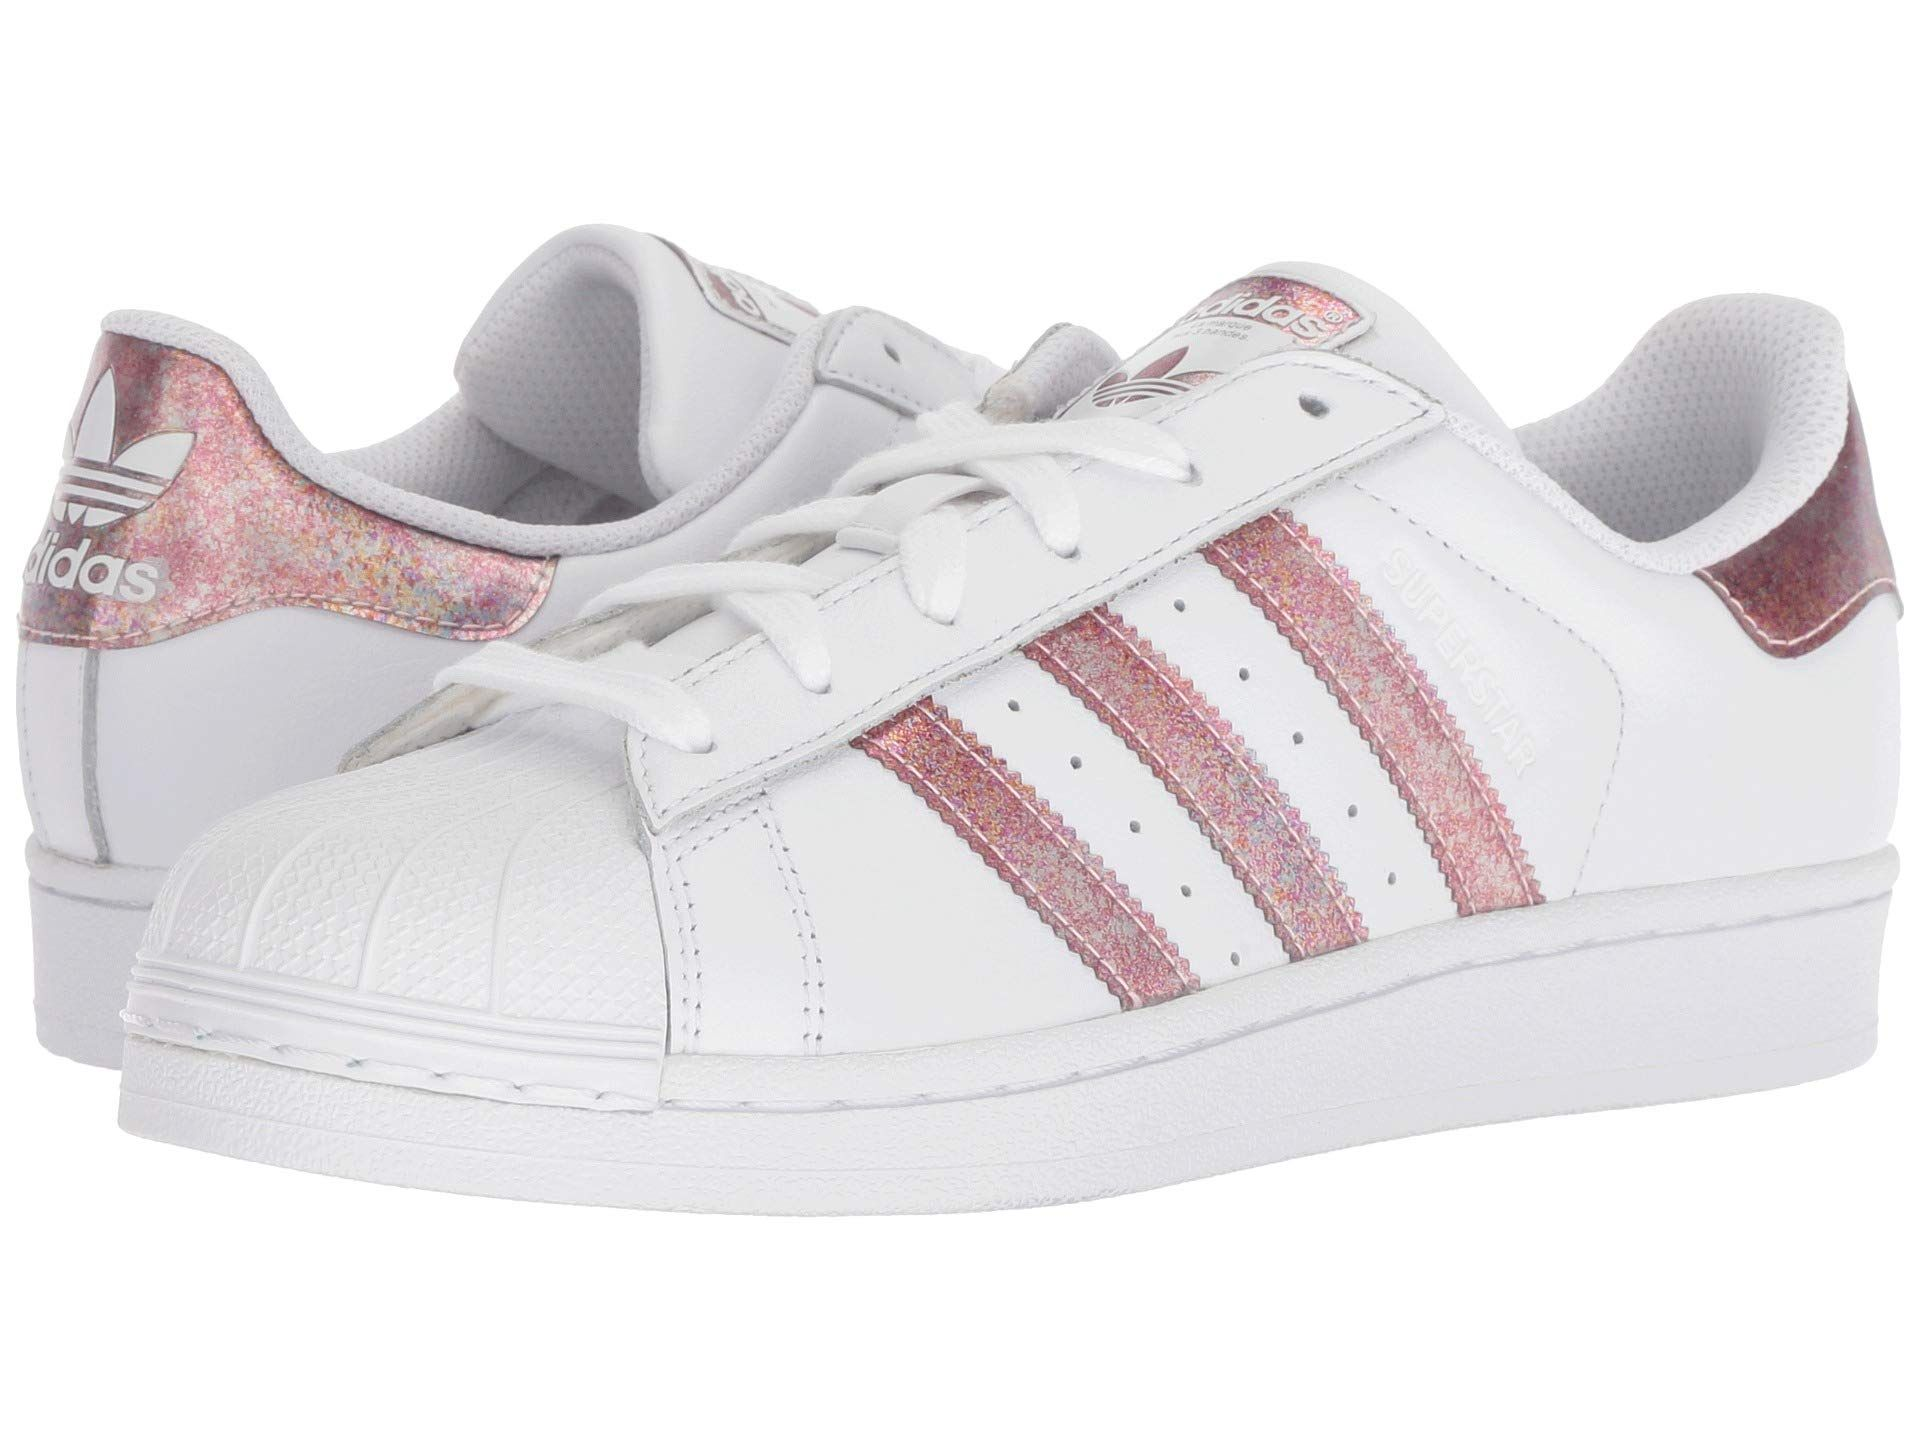 845d17f499d5a Adidas Little Girls  Morales superstar sparkly pink striped white sneakers size  13